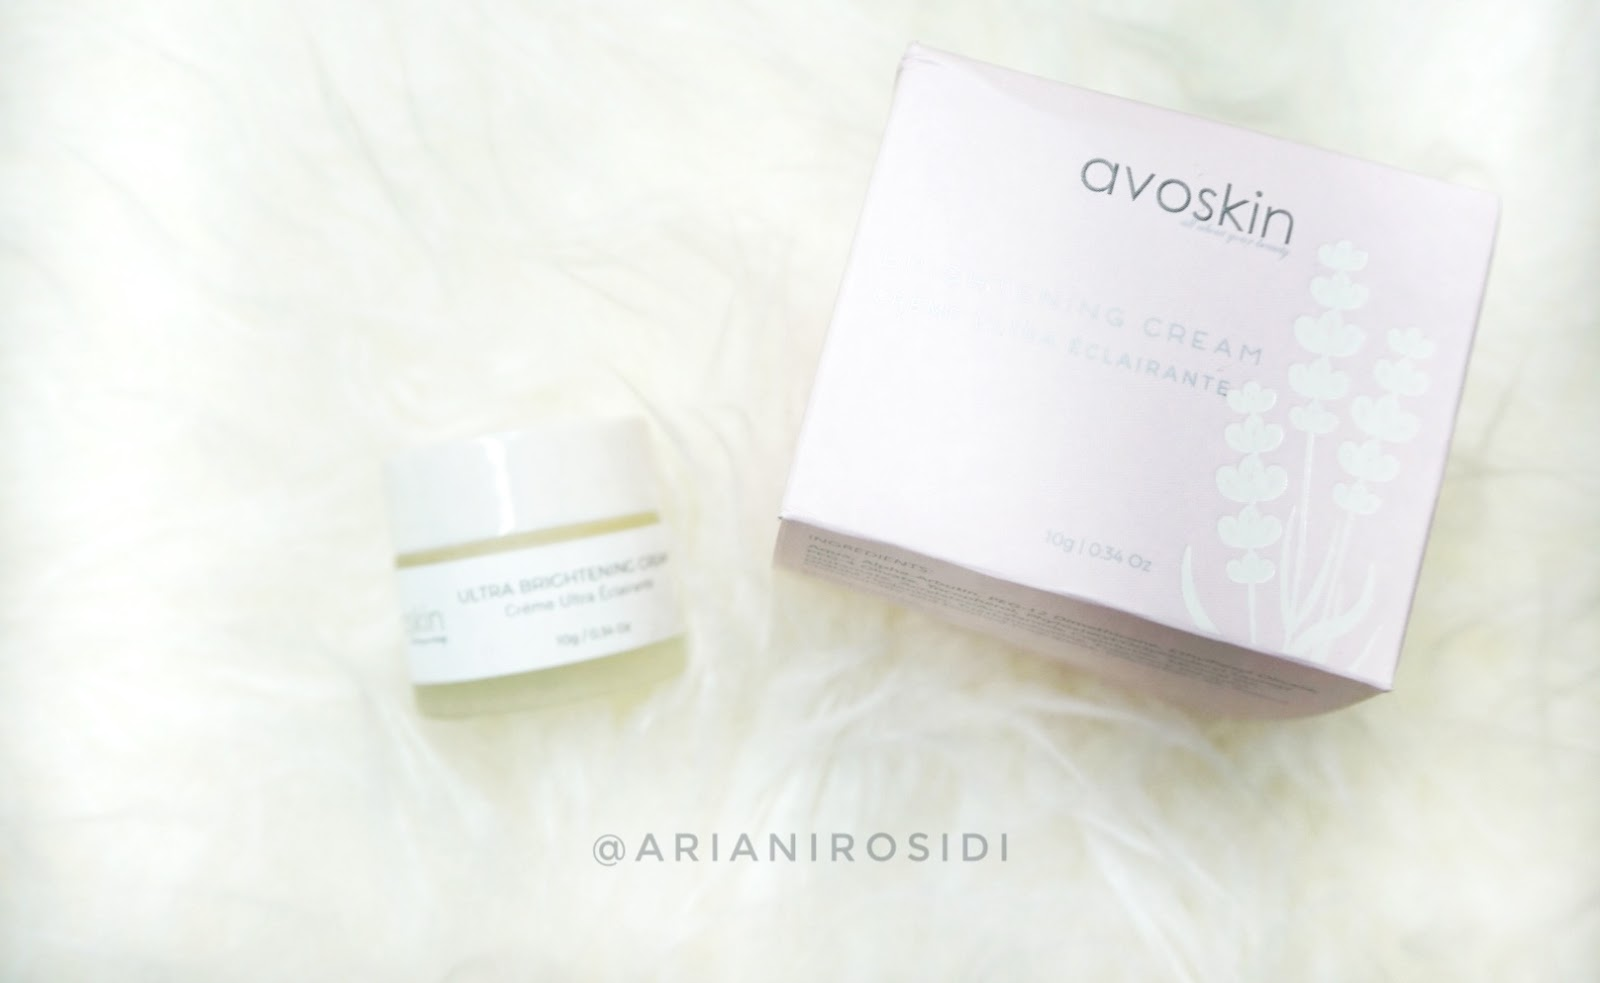 AVOSKIN ULTRA BRIGHTENING CREAM REVIEW